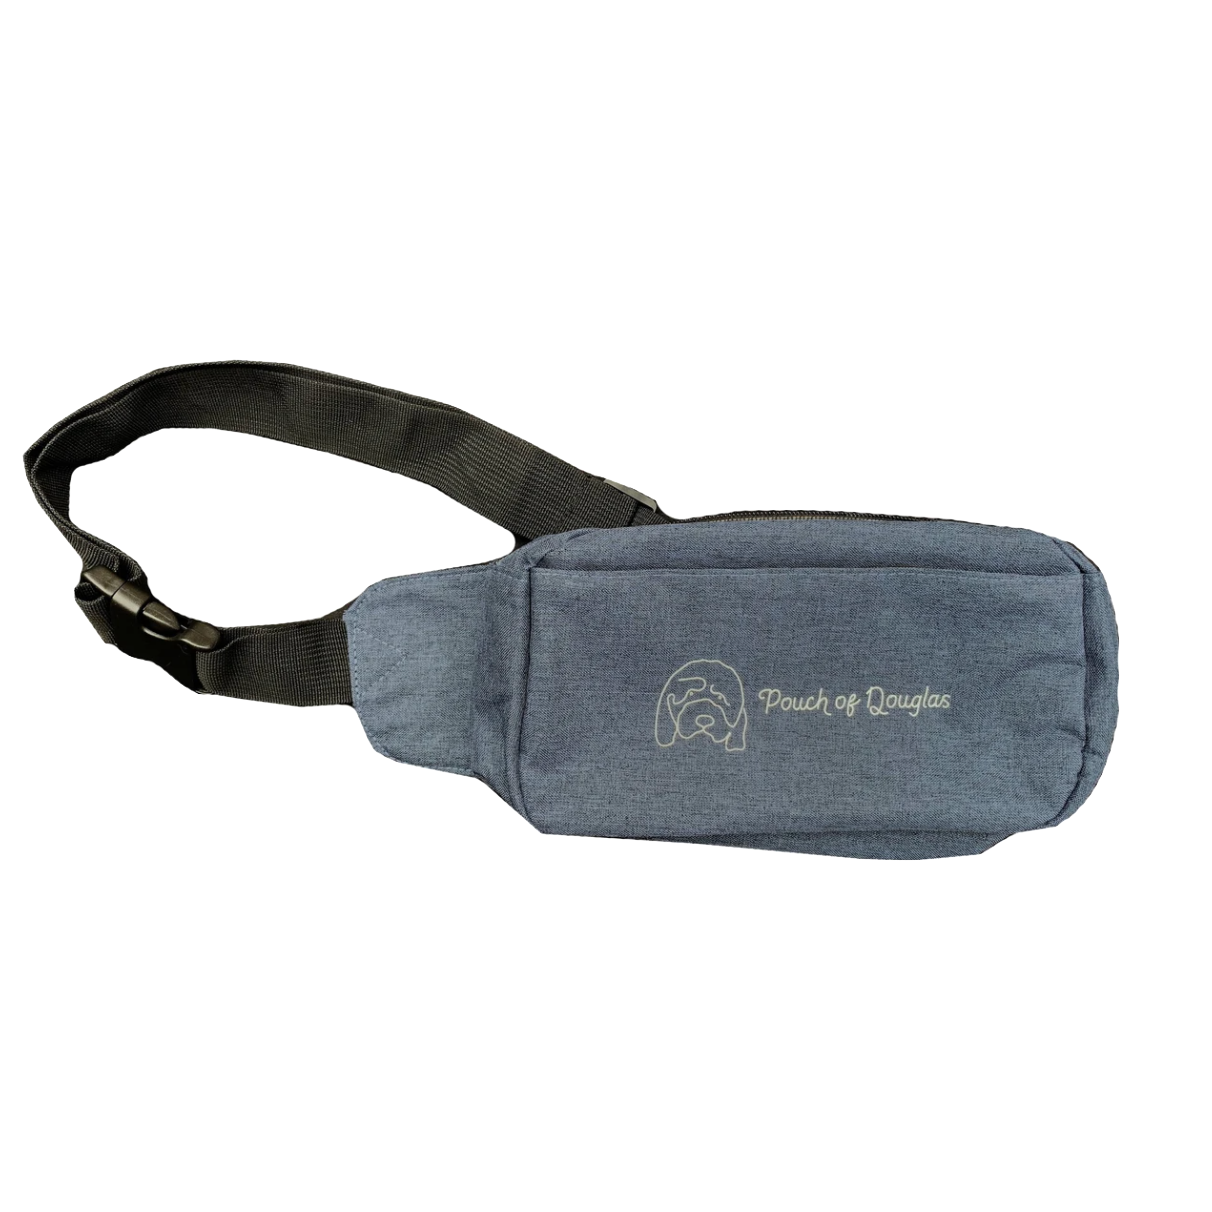 Hannah Gadsby's Pouch of Douglas Fanny Pack in blue and black